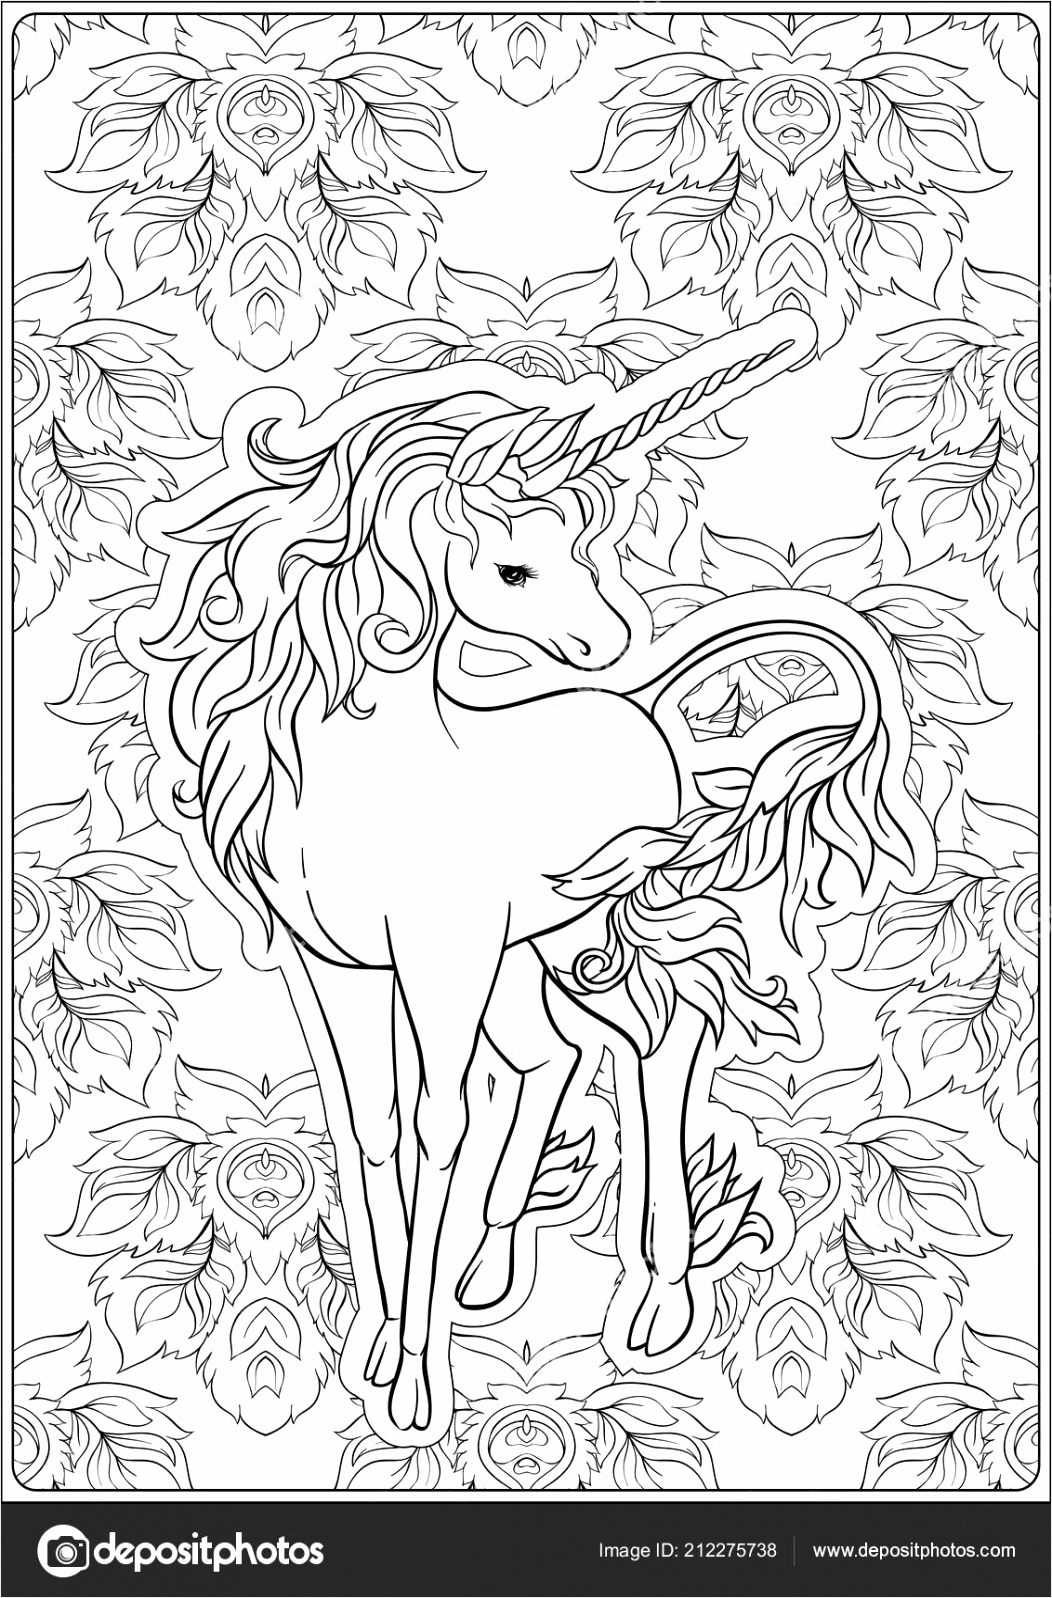 depositphotos stock illustration unicorn and fantastic vintage flowers wxiat